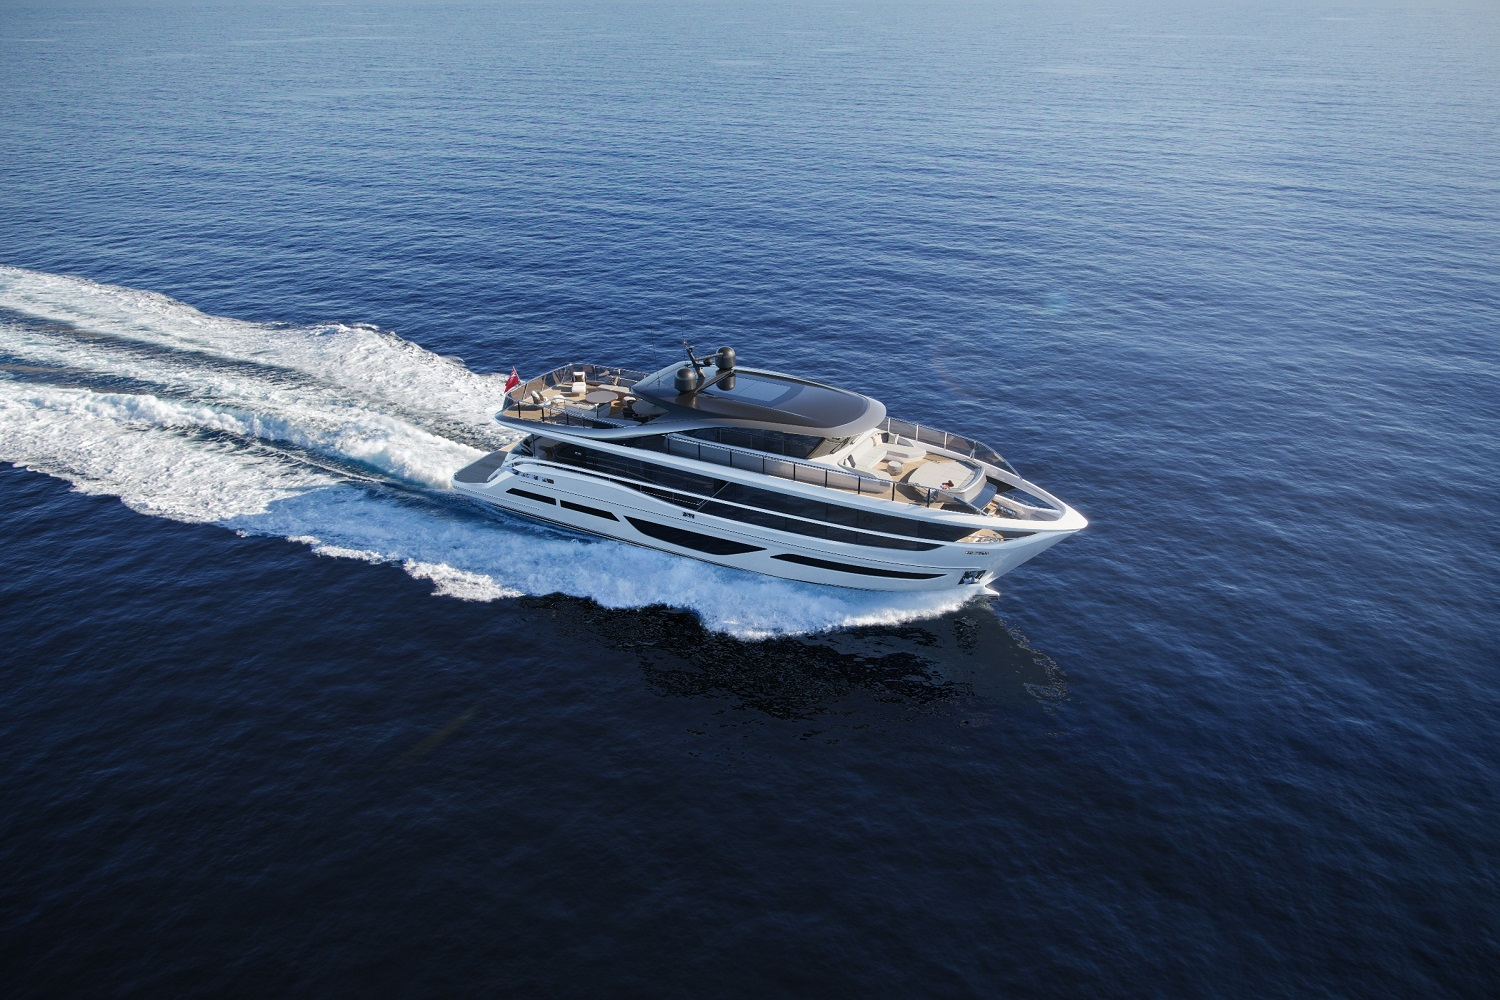 The Princess X95 Superfly The Suv Of The Seas Our Man On The